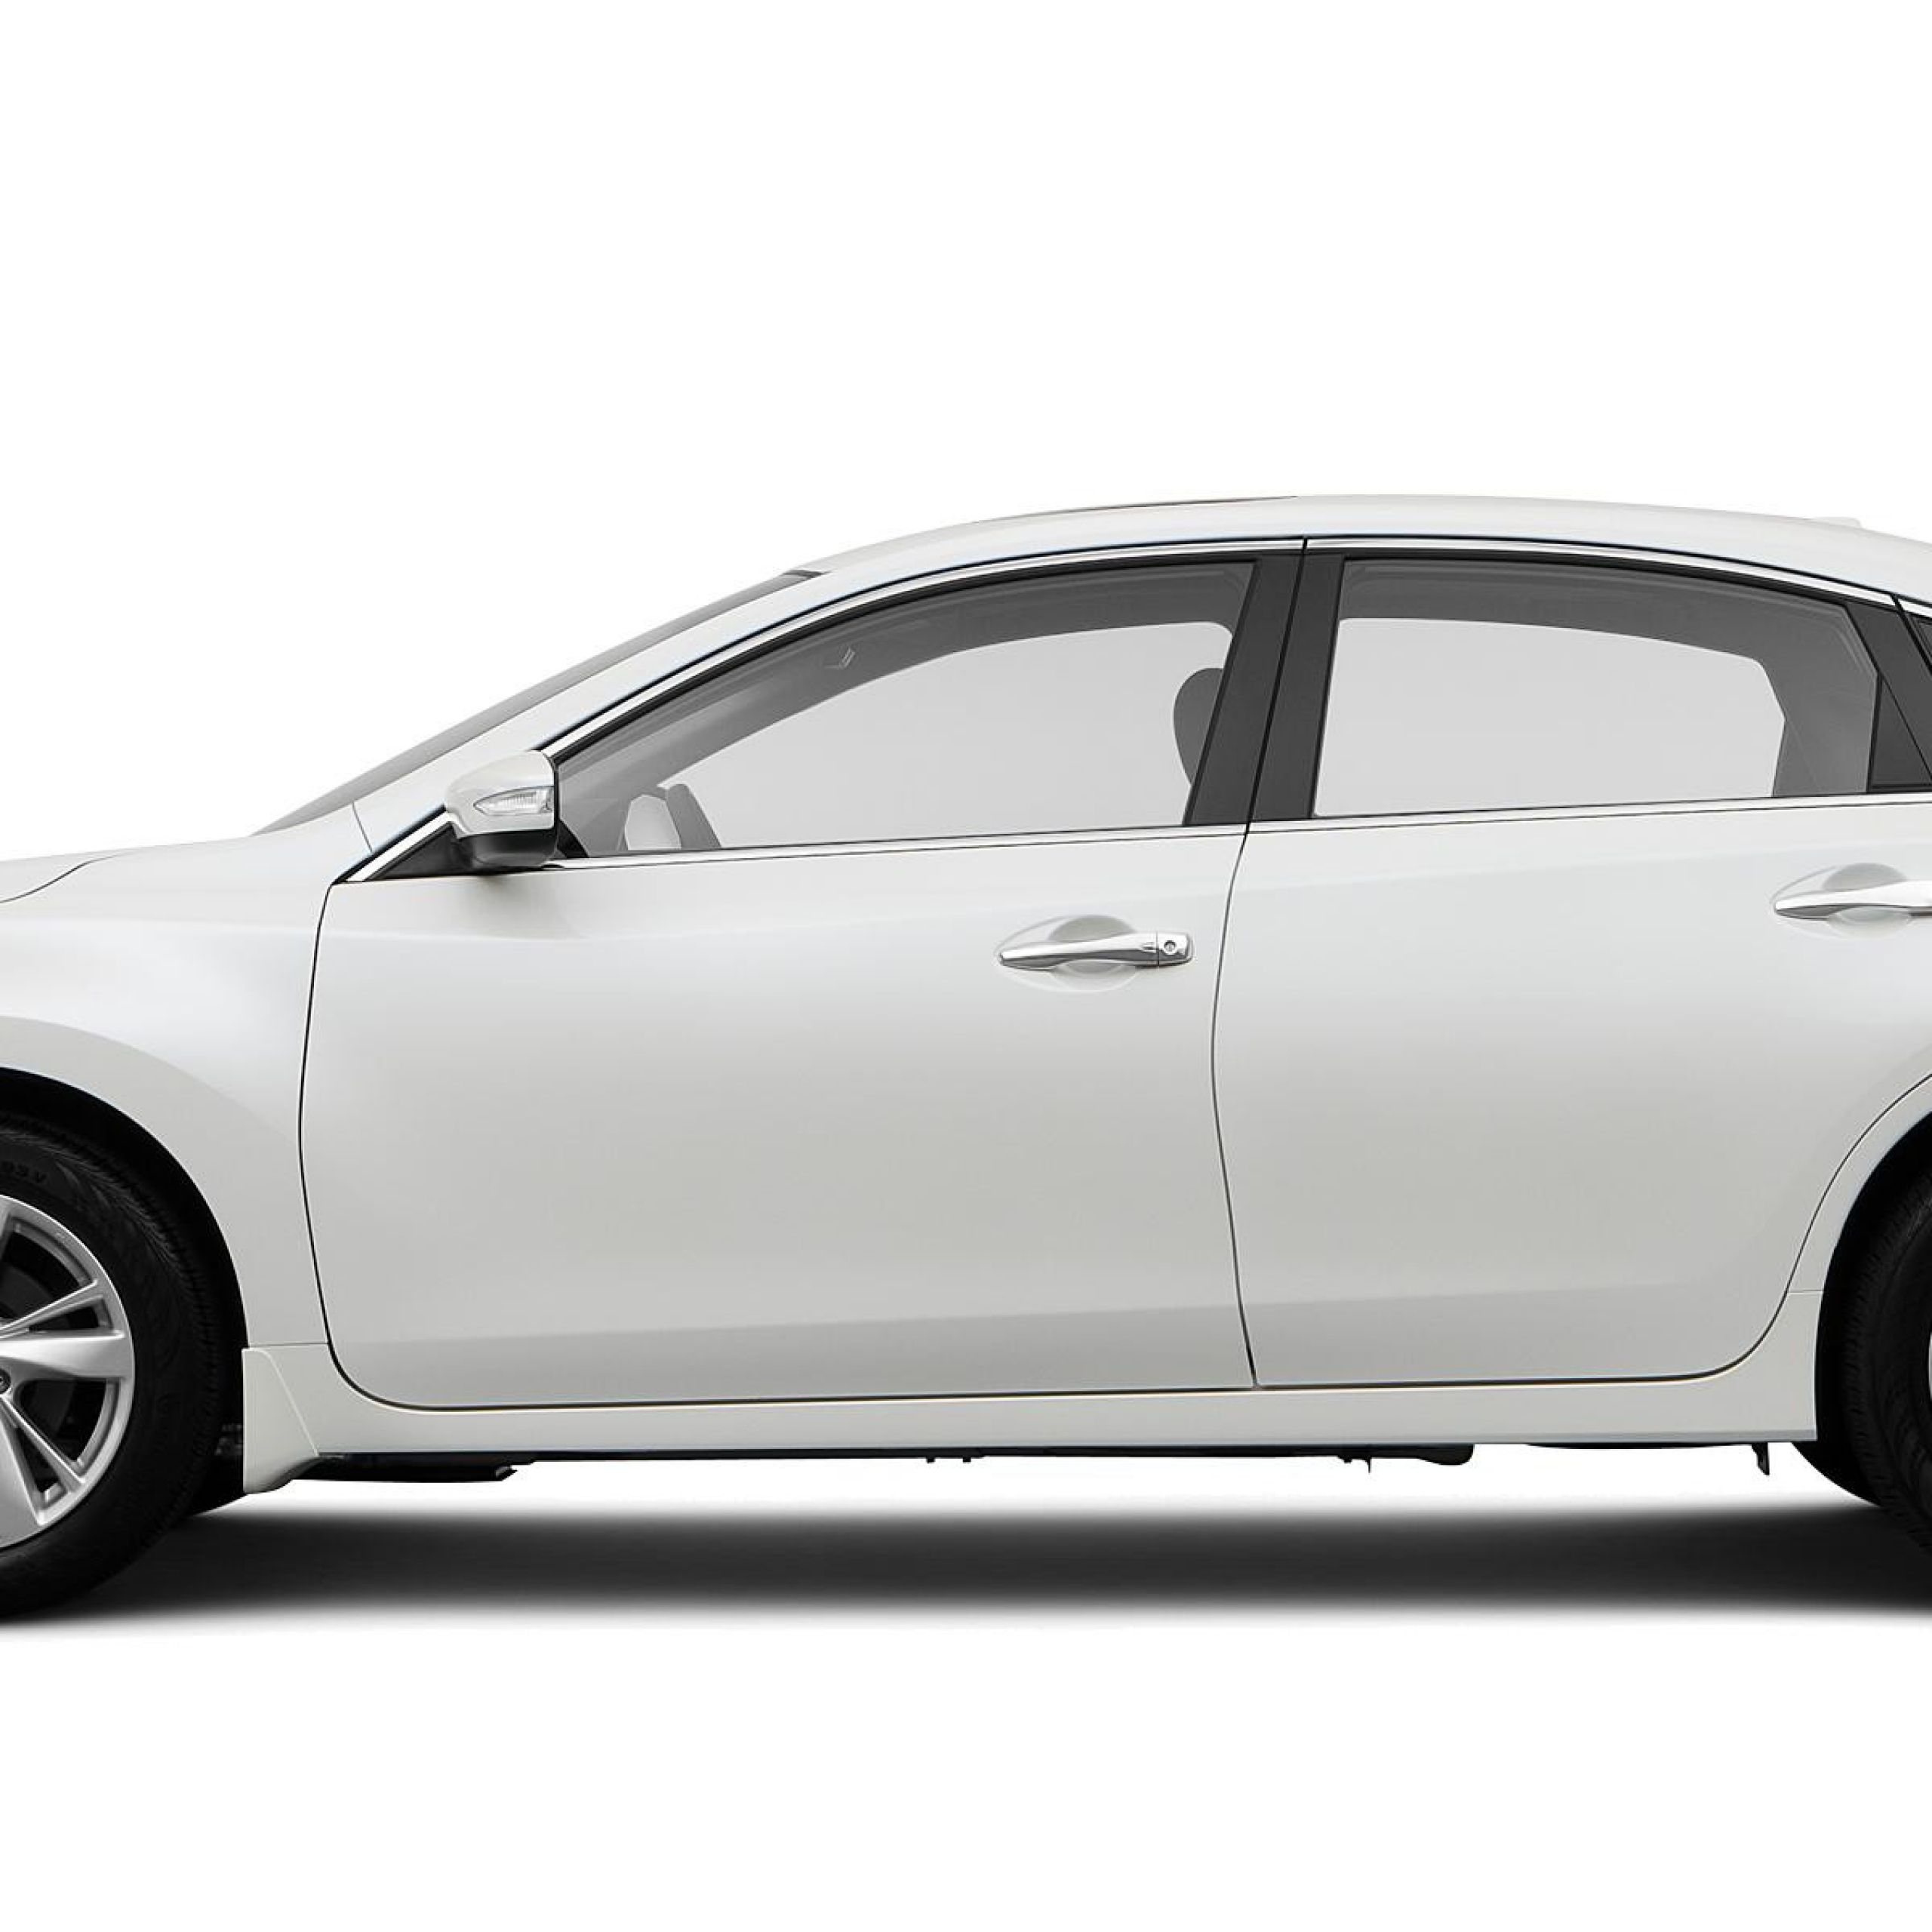 2014 Nissan Altima Lovely 2014 Nissan Altima 2 5 Sv 4dr Sedan Research Groovecar